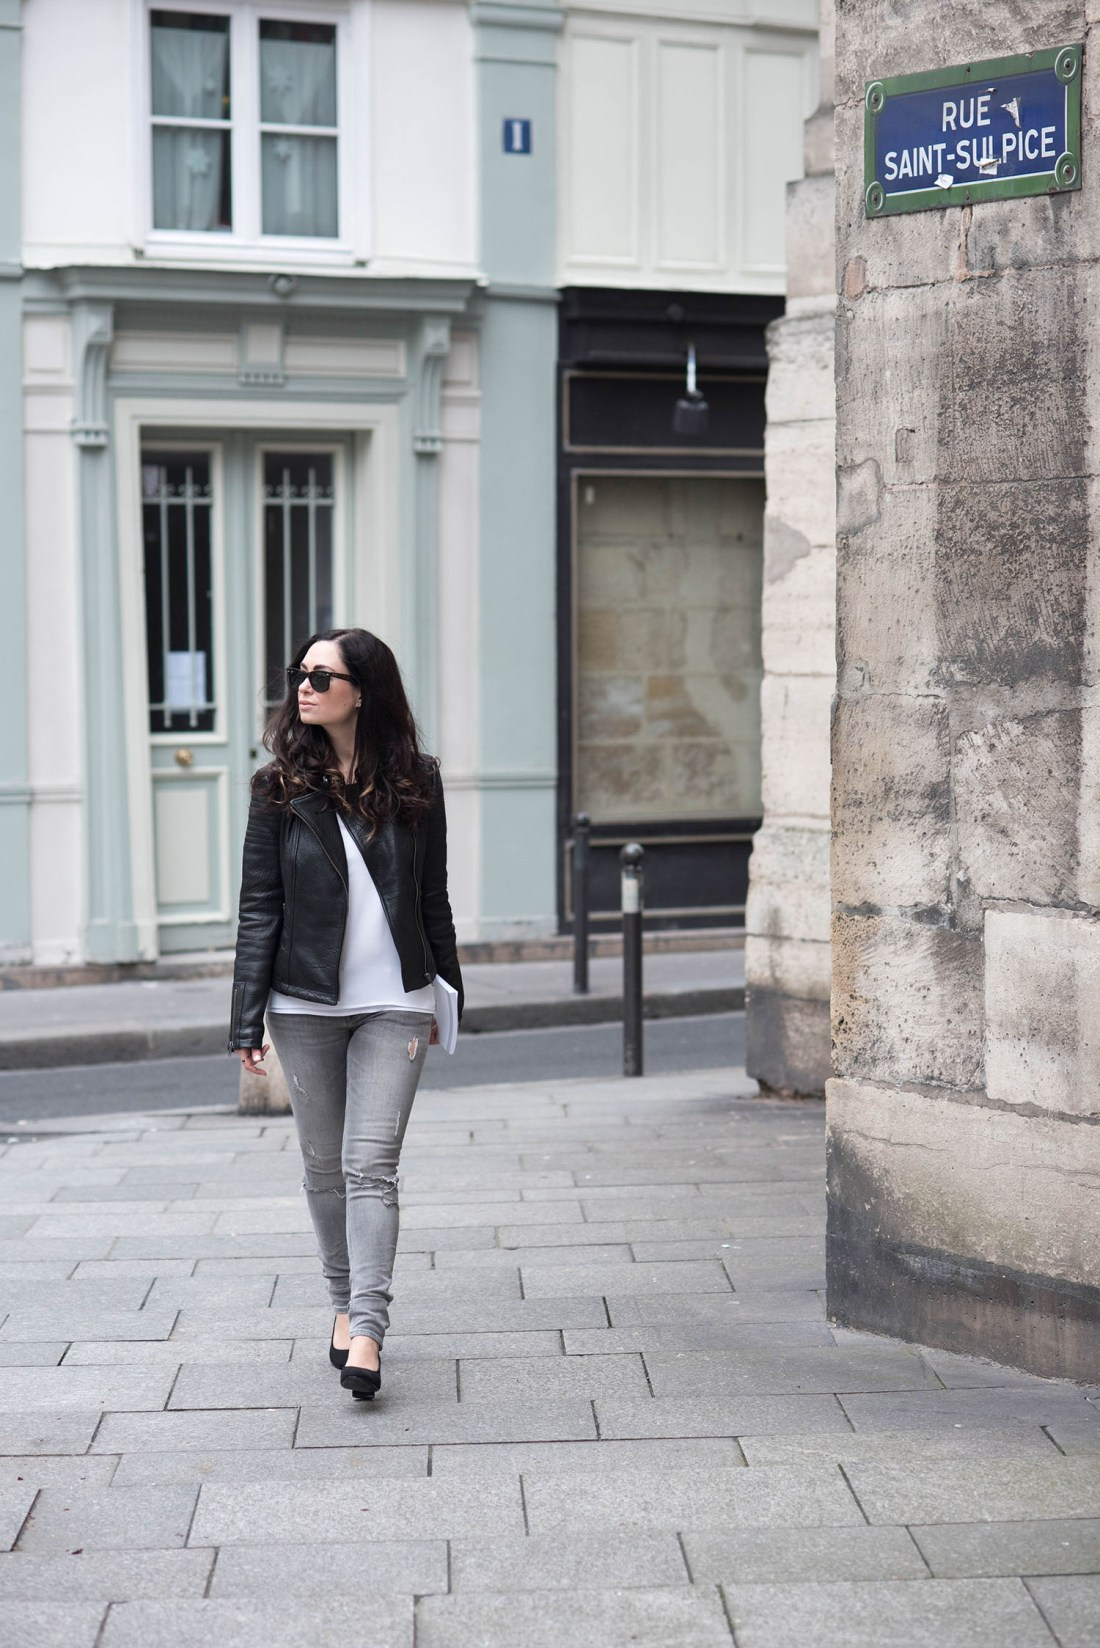 Fashion blogger Cee Fardoe of Coco & Vera wears Zara jeans and a leather jacket in Paris